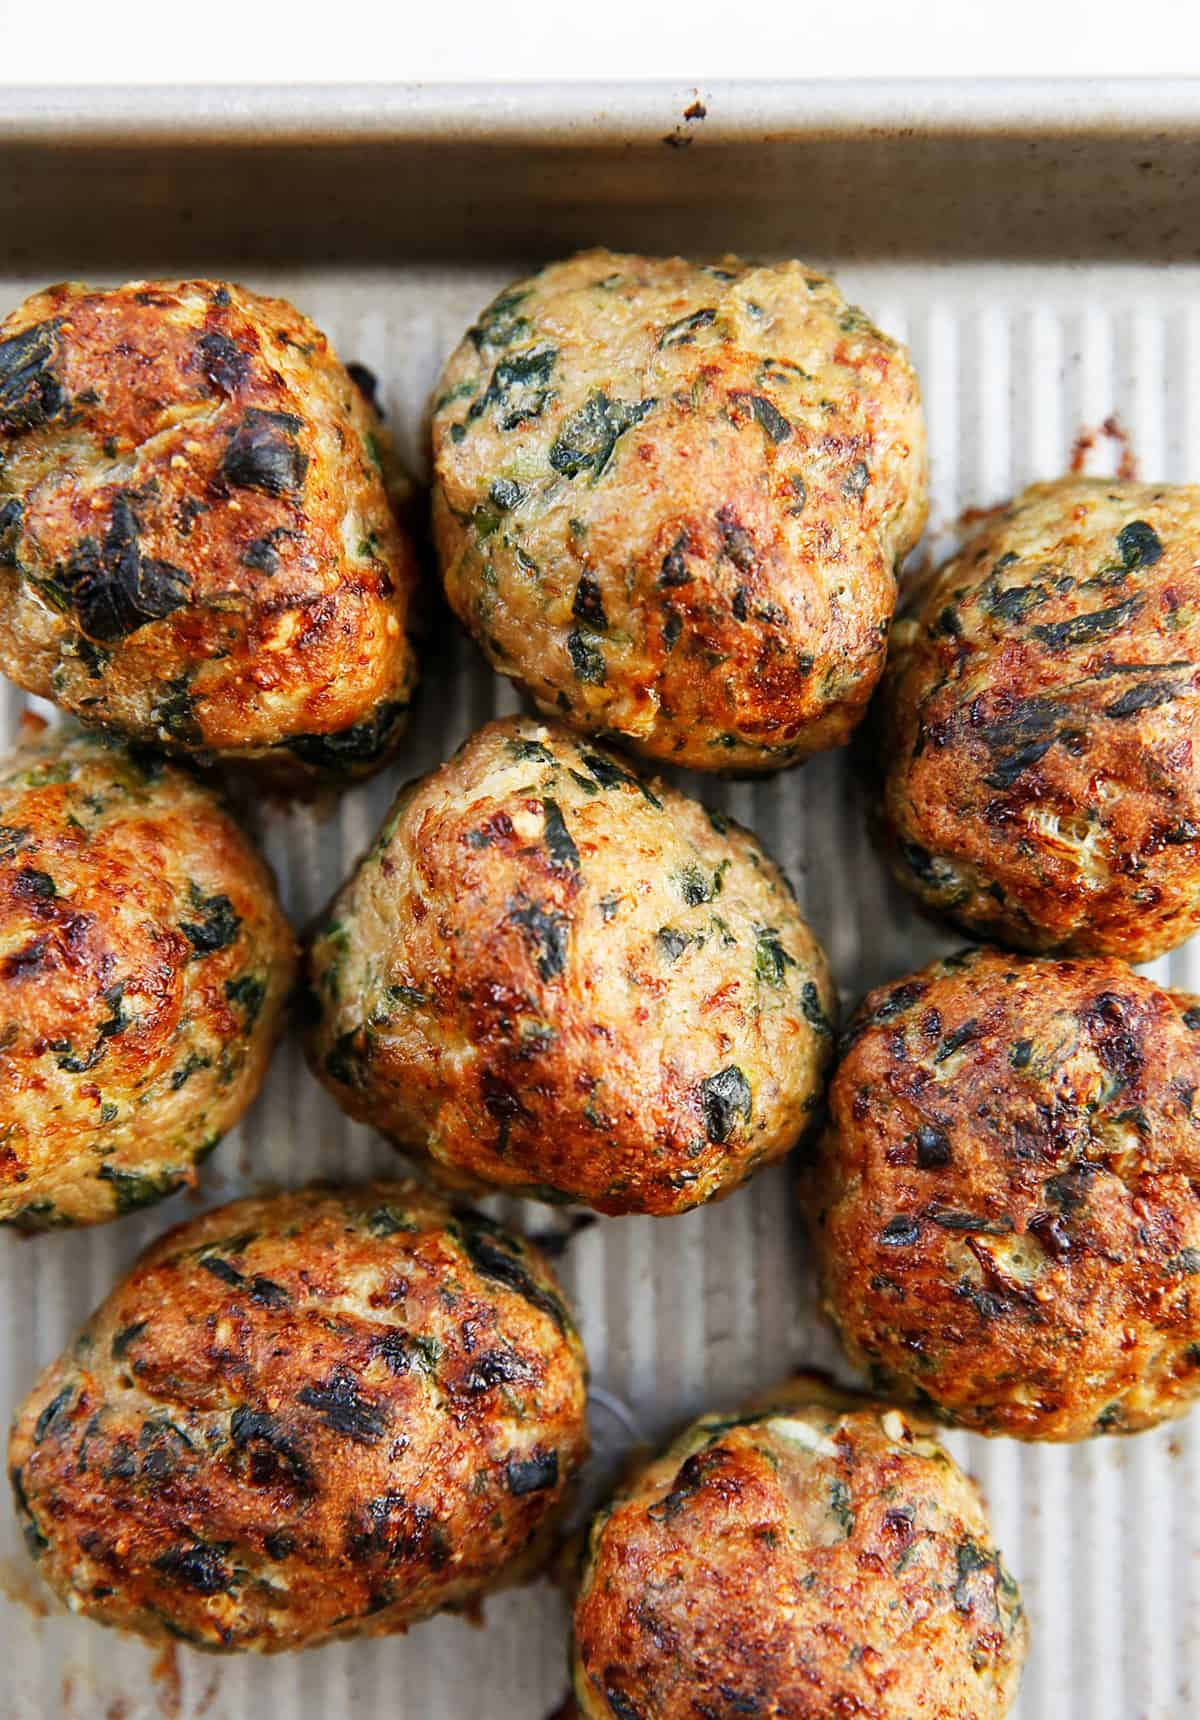 Paleo turkey meatballs with spinach on a sheet pan.